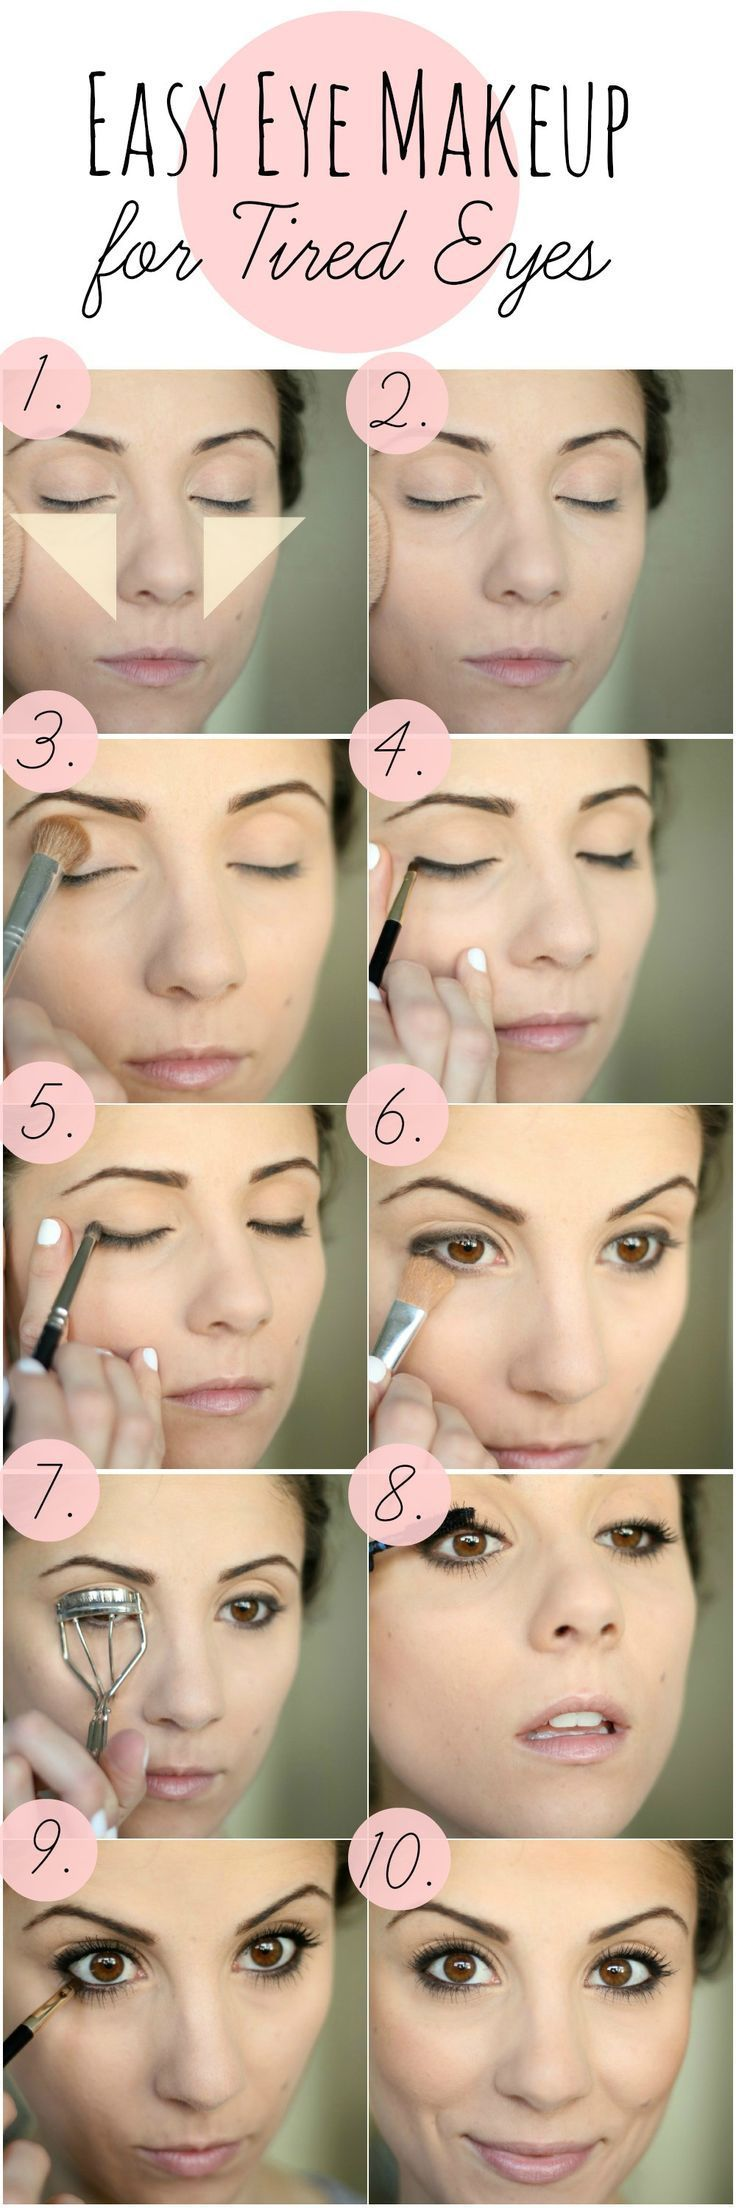 Makeup simple tutorial gallery any tutorial examples easy eye makeup for tired eyes tired eyes gel liner and make up easy eye makeup baditri Choice Image